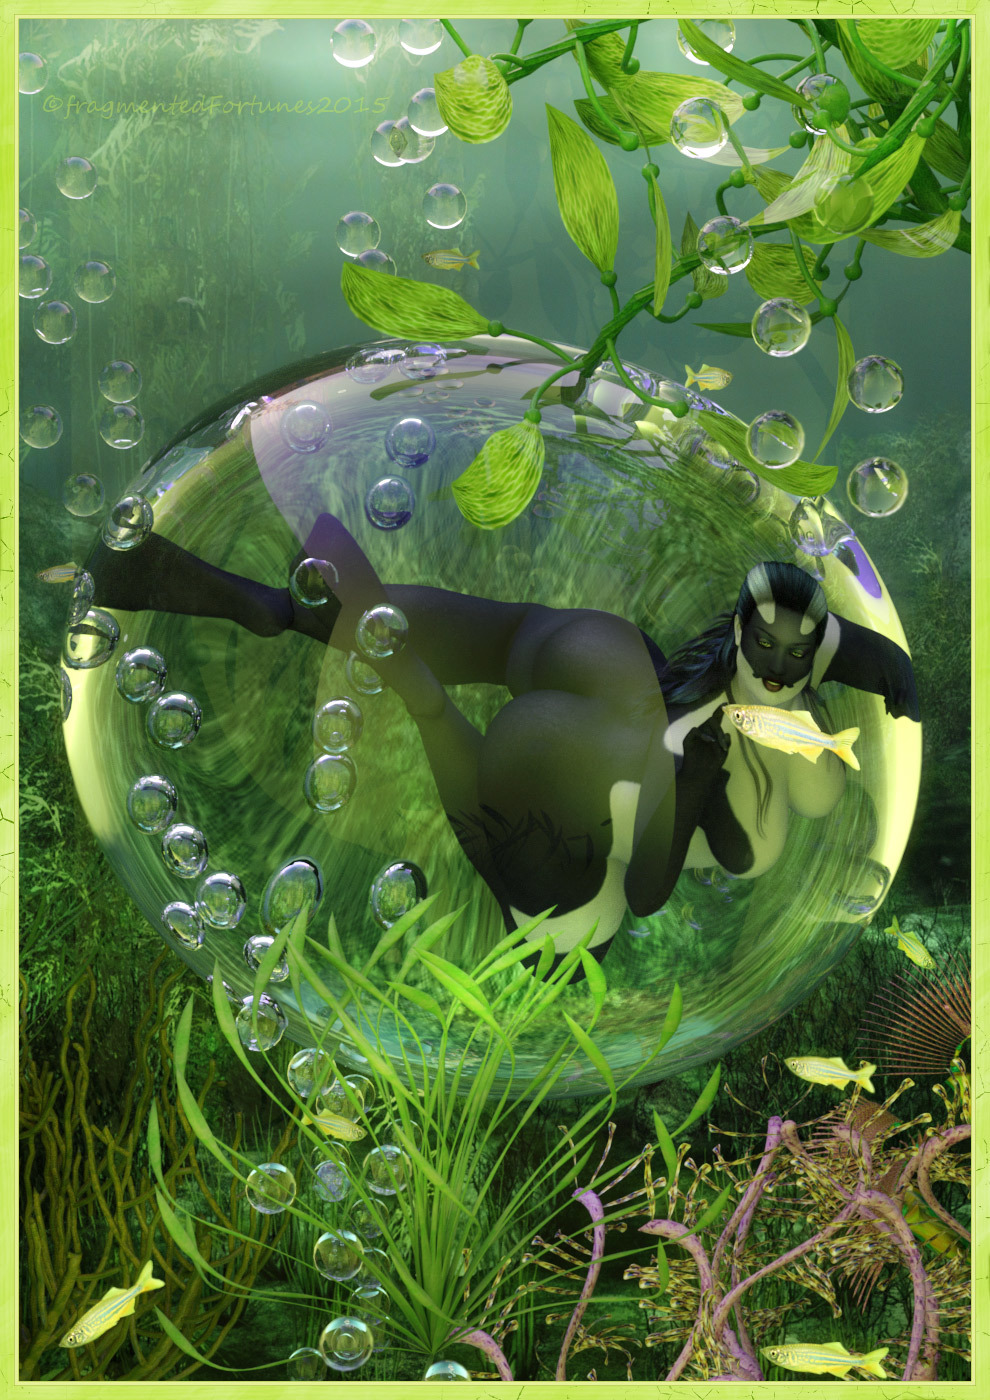 Wonders of the sea - Orca Bubble by FragmentedFortunes